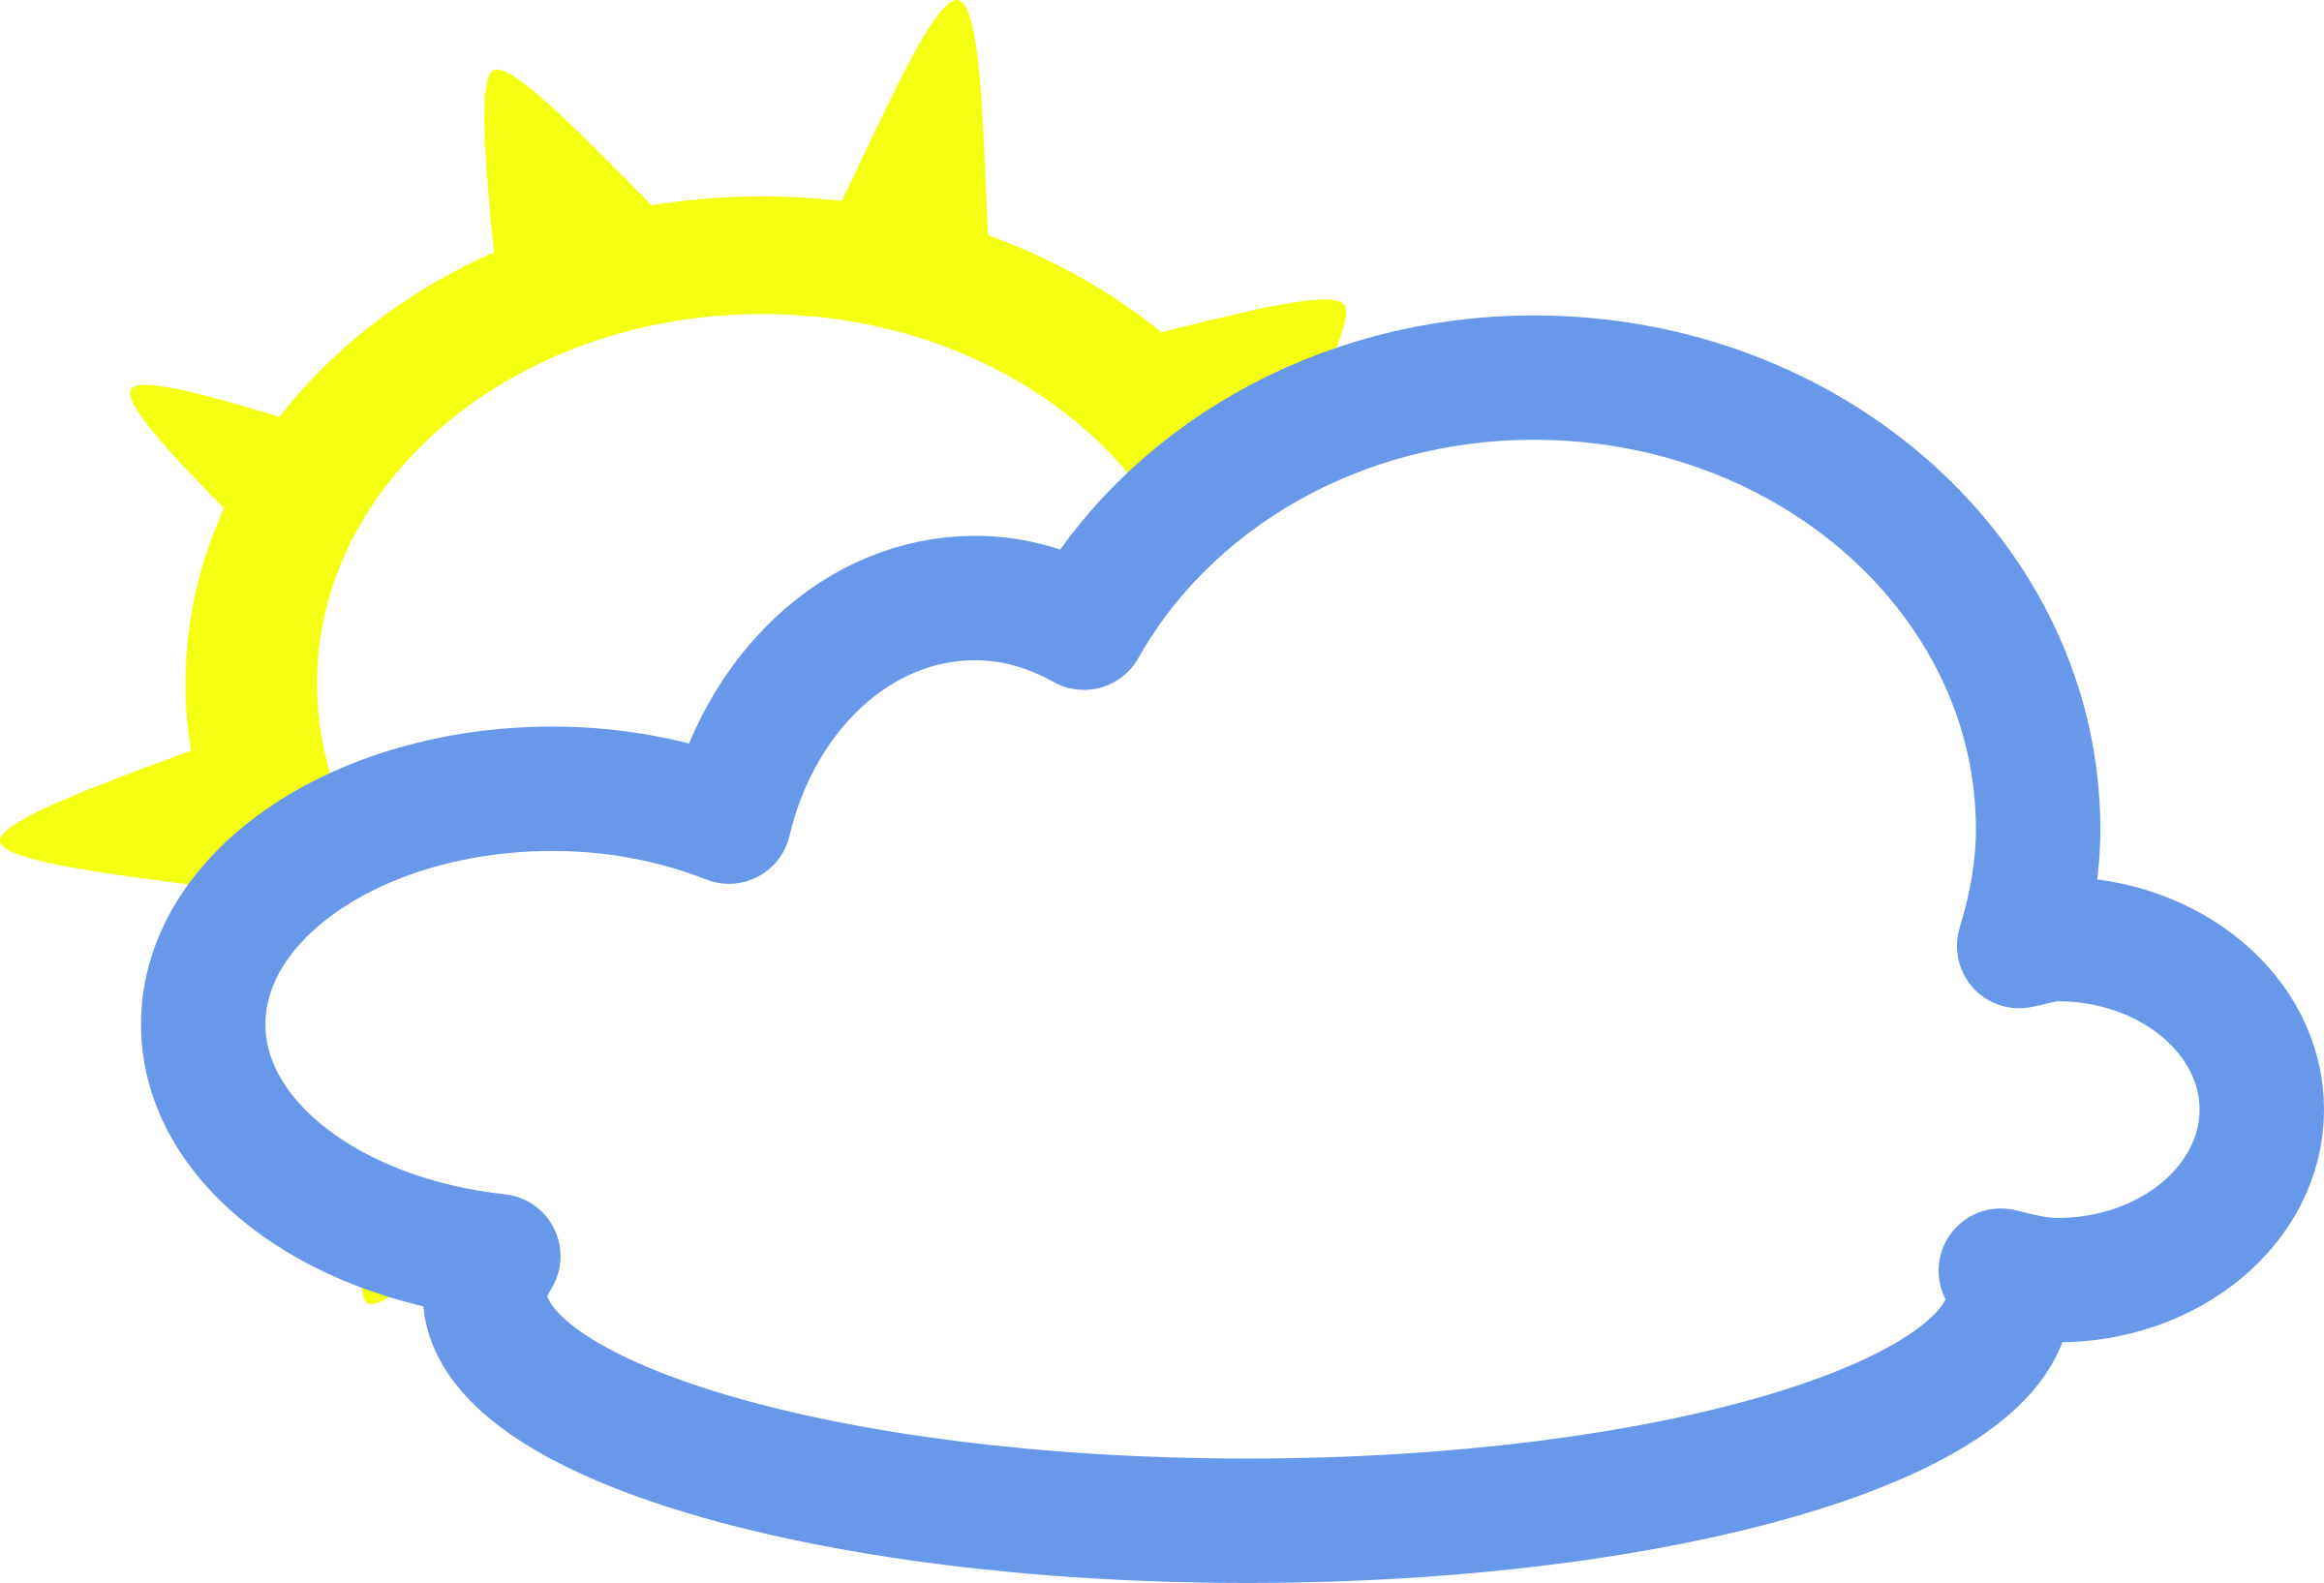 Simple symbols big image. Cloudy clipart weather forecast